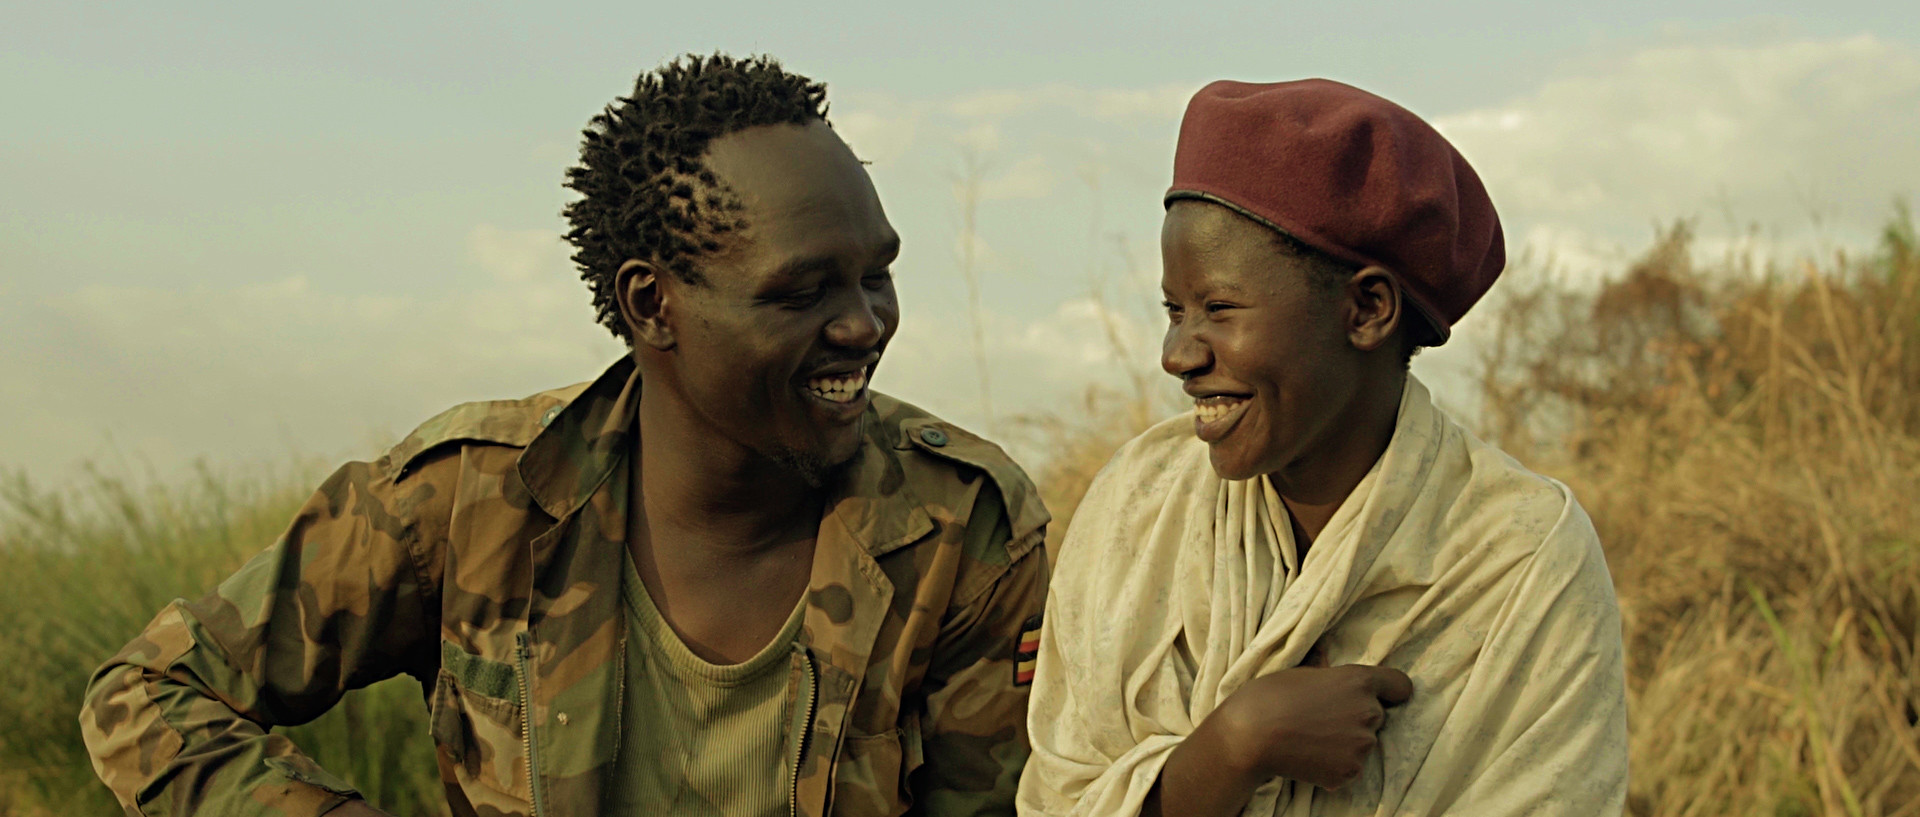 Uganda Submits First Ever Film For The Oscars Awards 2